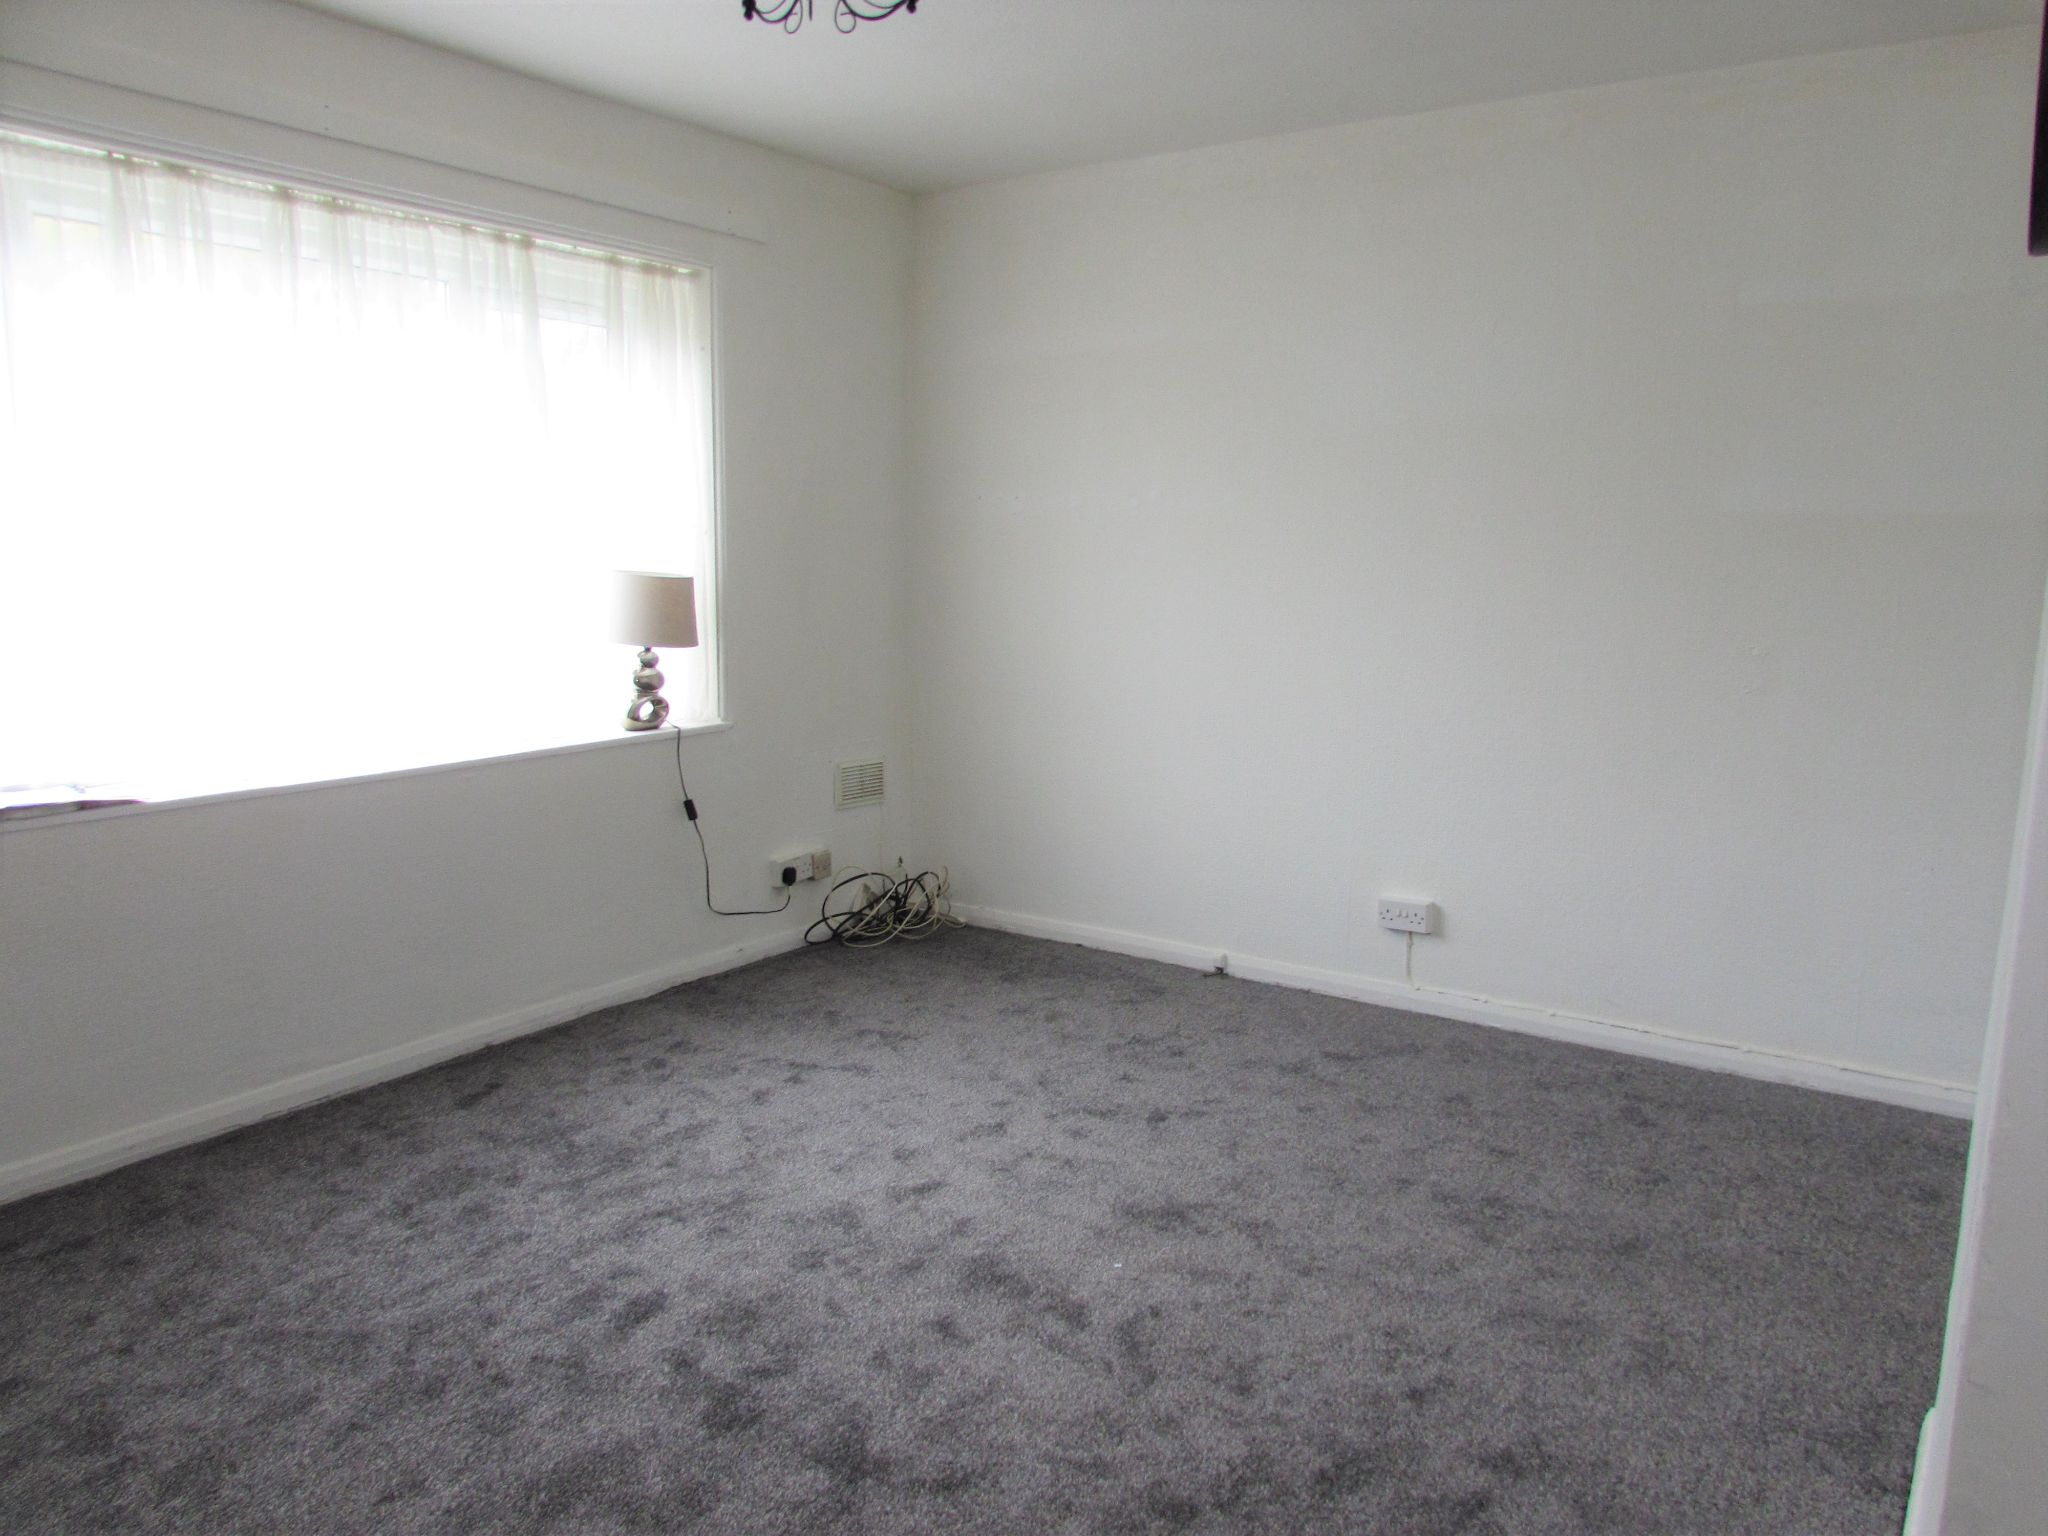 3 Bedroom End Terraced House For Sale - Photograph 4